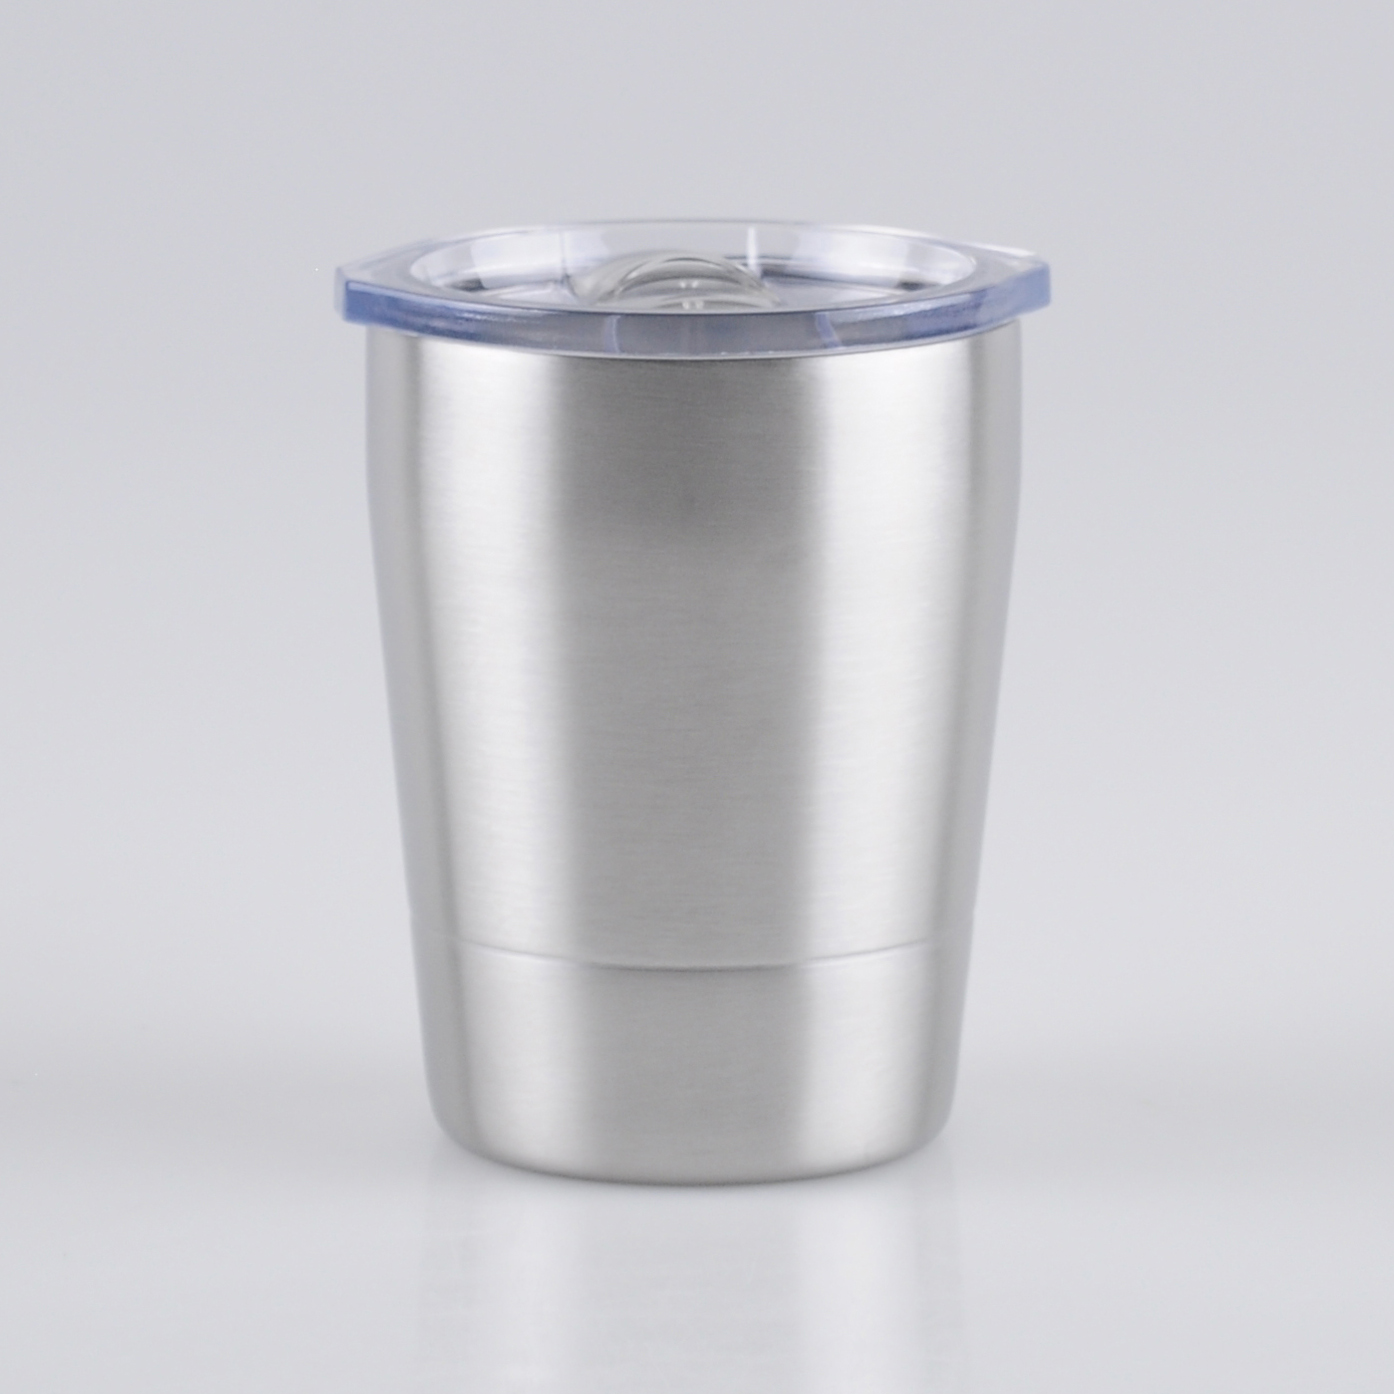 250ml-compact-stainless-steel-drinking-cup-with-sliding-lid (1)